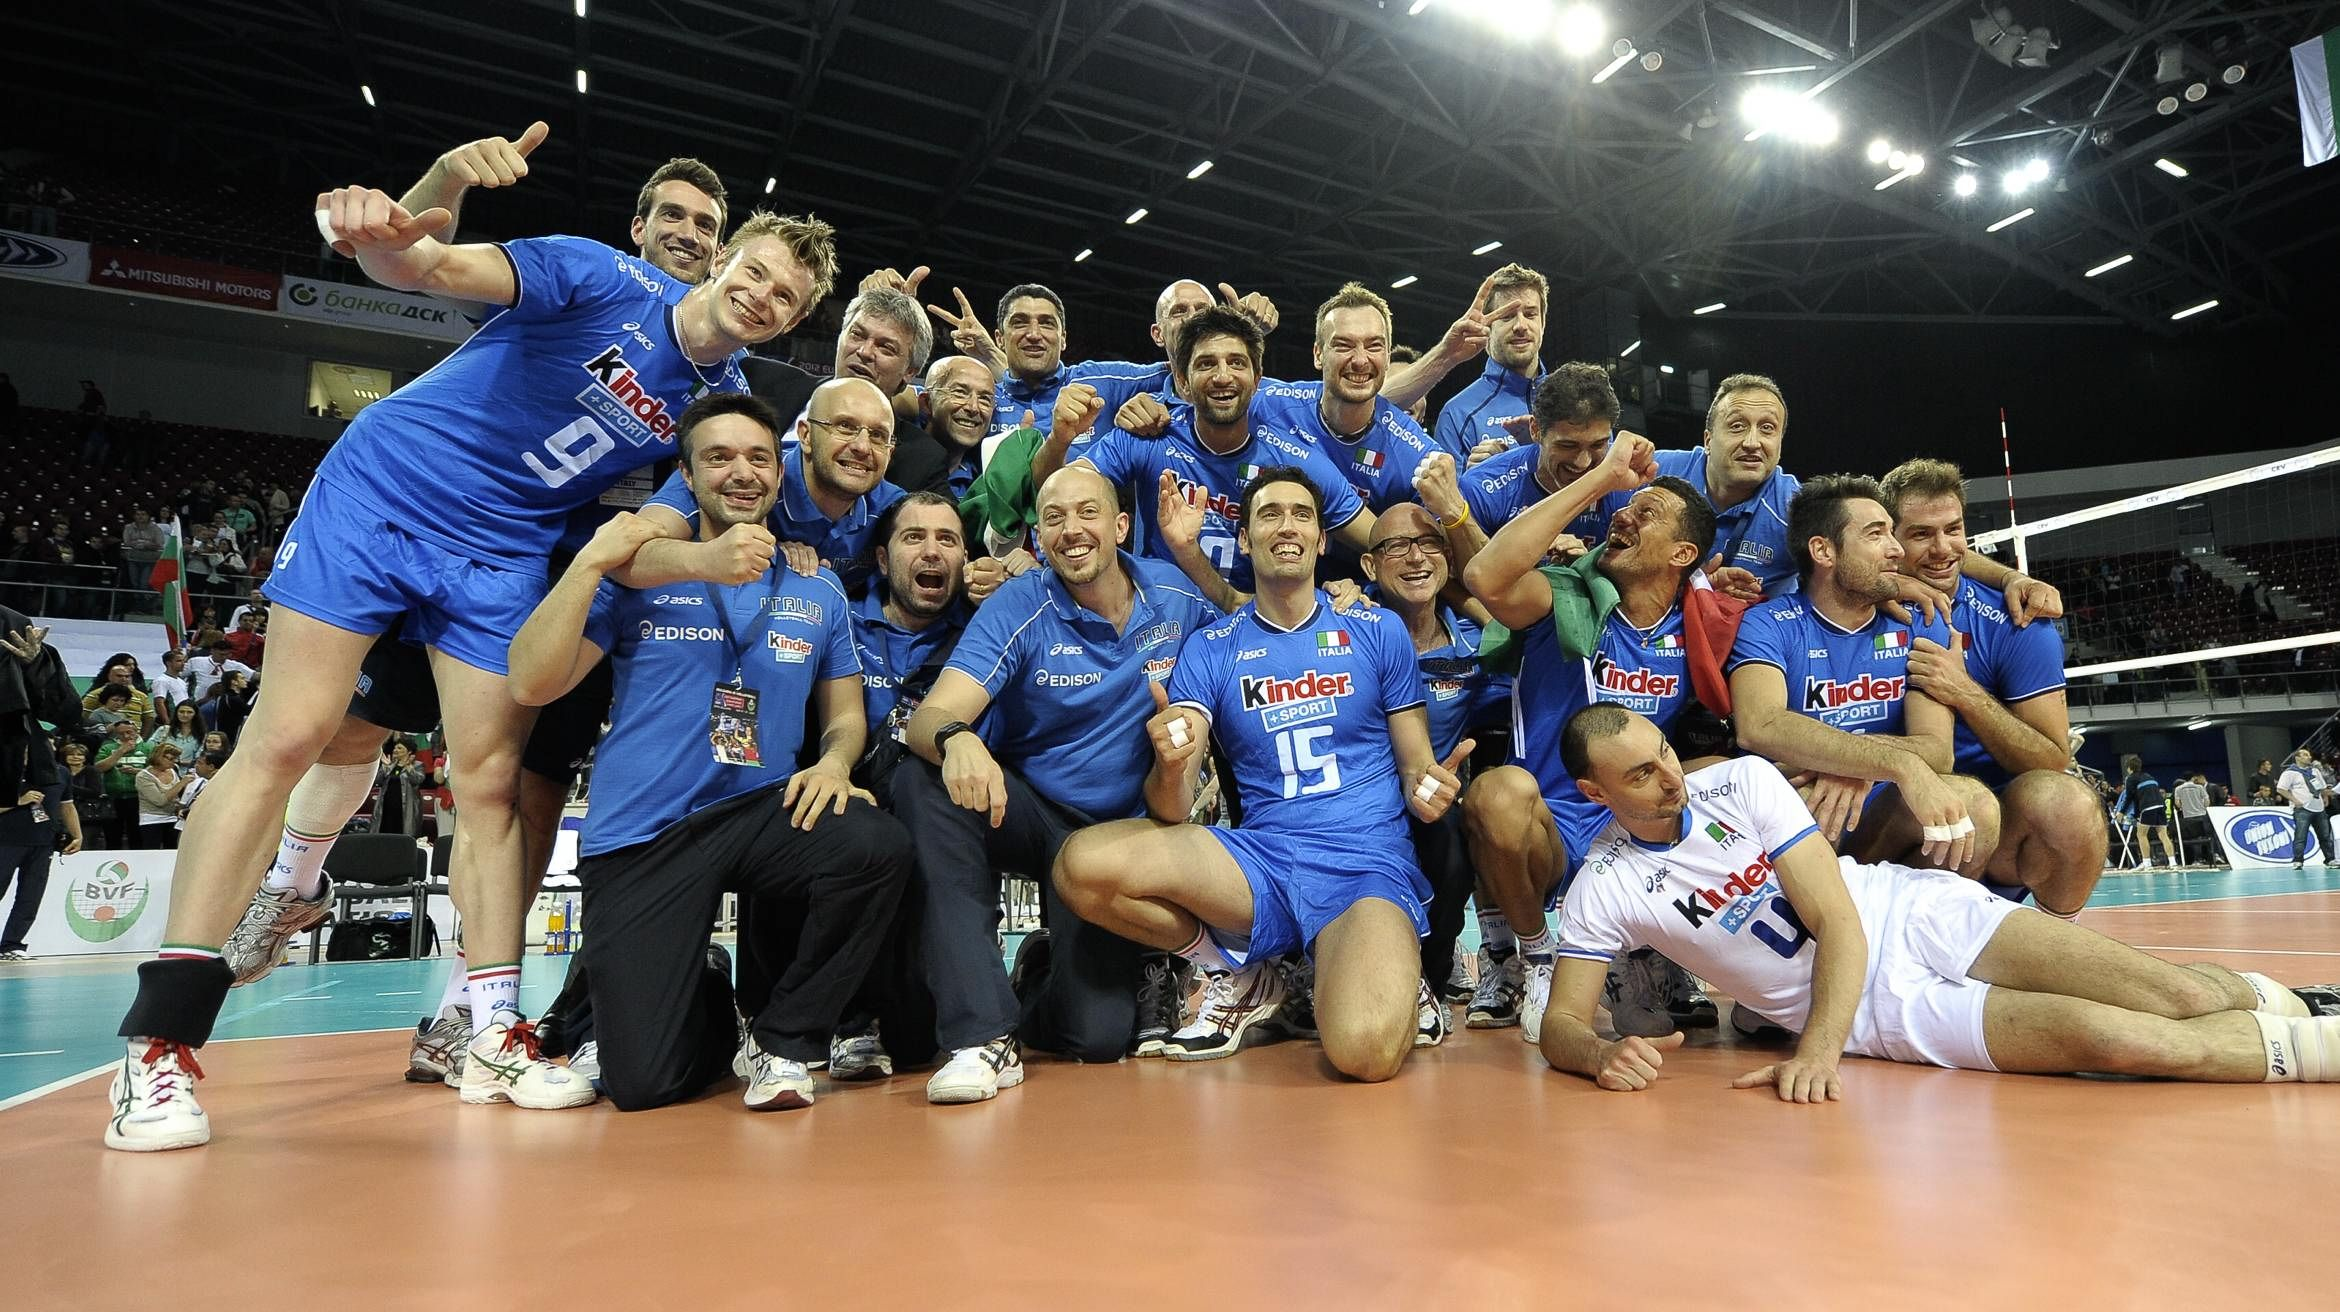 Italian Volleyball Team With Images Volleyball National Championship Volleyball Volleyball Team